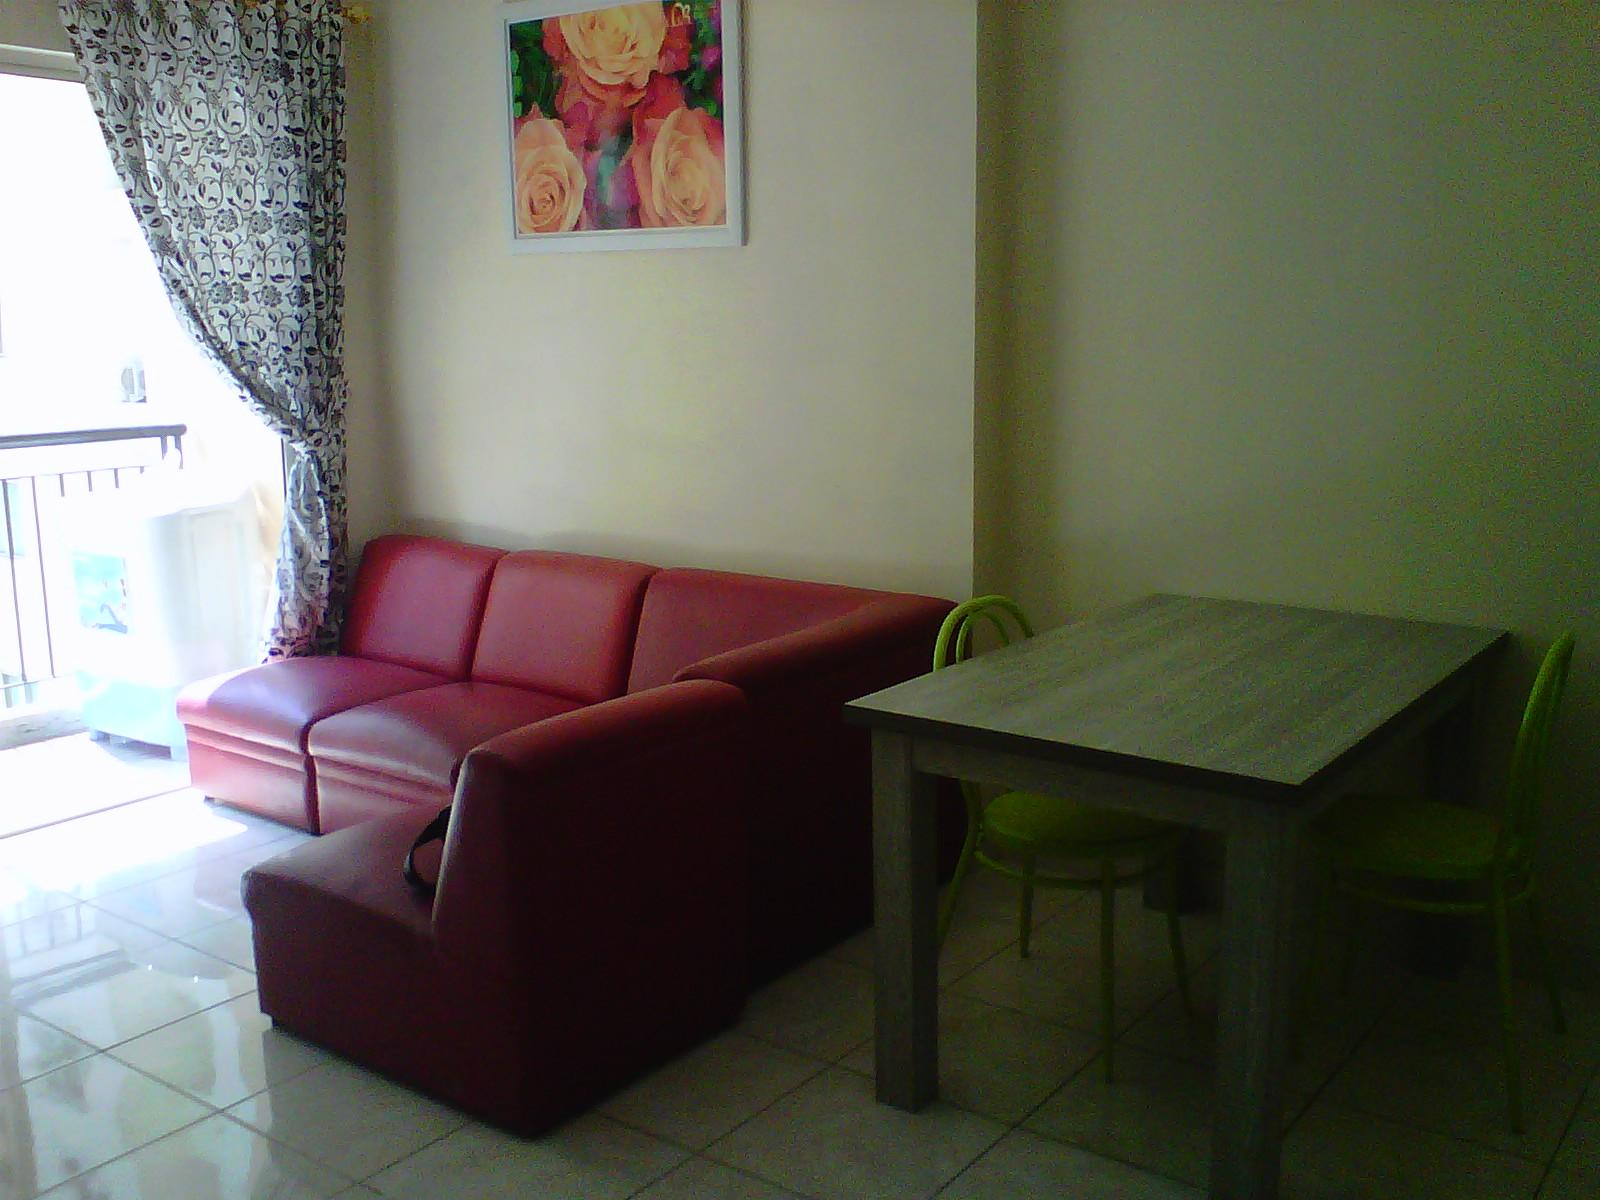 MOI Kelapa Gading - Clean And Comfy 2BR 12th Floor @ Apartment City Home By Adaru Property At MOI